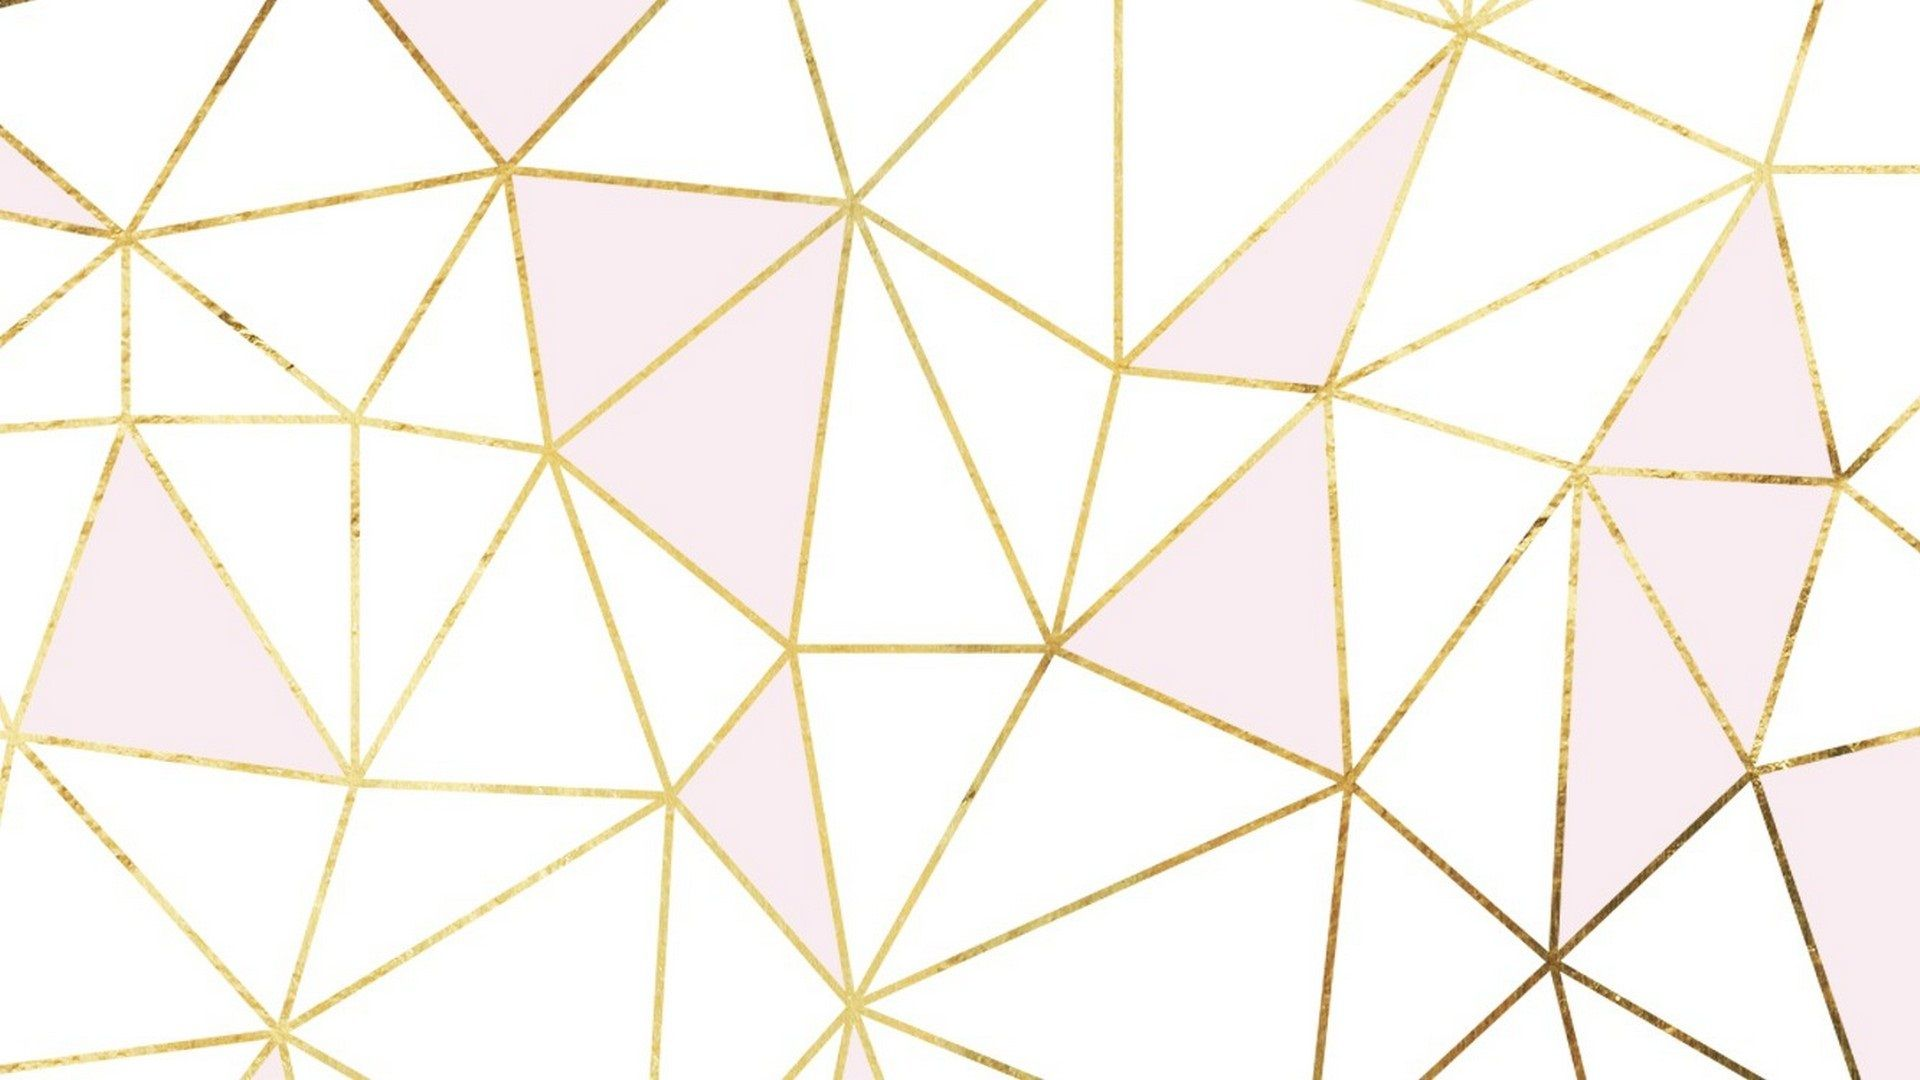 Pc Wallpaper Rose Gold Marble Best Hd Wallpapers Gold Macbook Wallpaper Gold Wallpaper Macbook Wallpaper